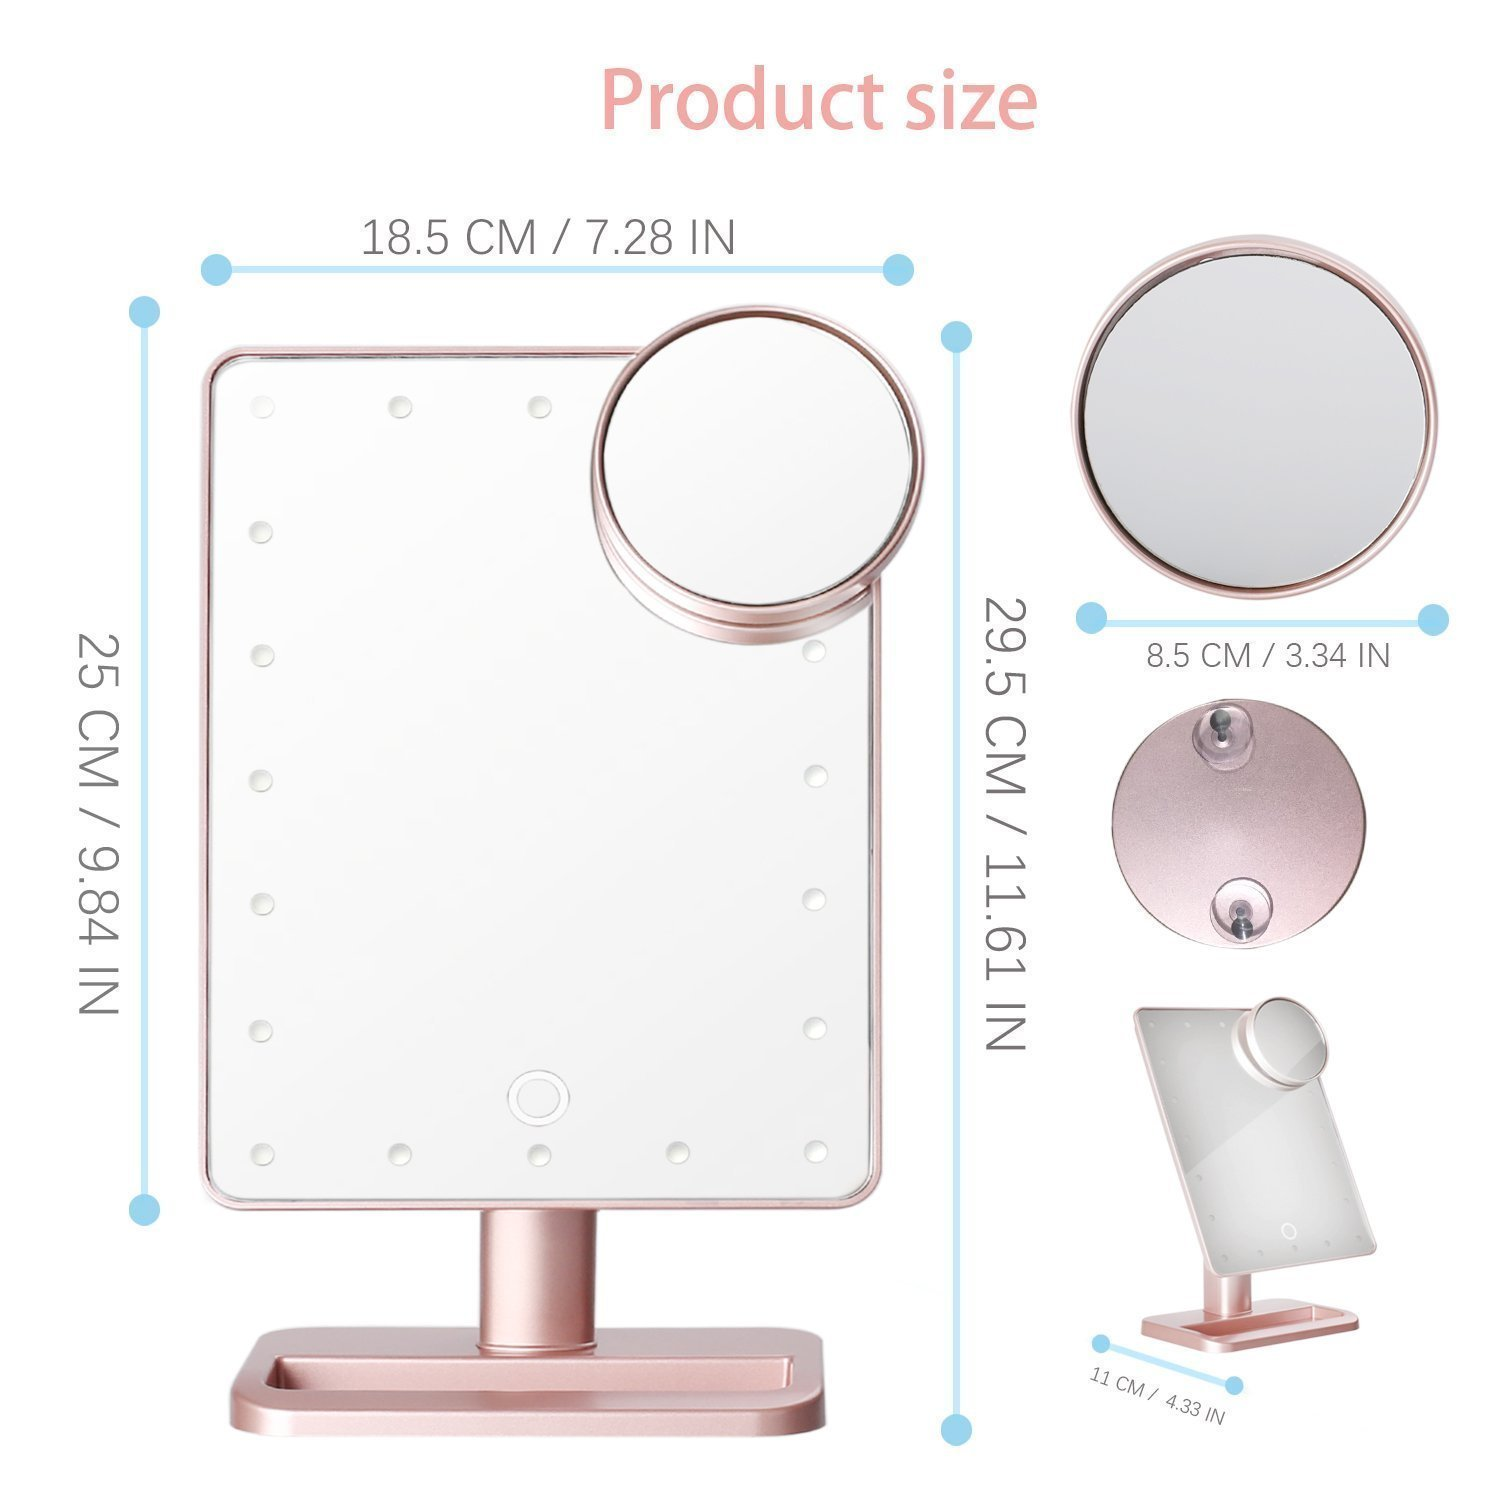 Hansong Makeup Mirror with Lights/Vanity Mirror,20 LED Lights Cosmetic Mirror with USB Chargeable,Wireless Audio Speakers,Detachable 10X Magnifying,180° Rotation Vanity Mirror with Lights(Rose Gold)